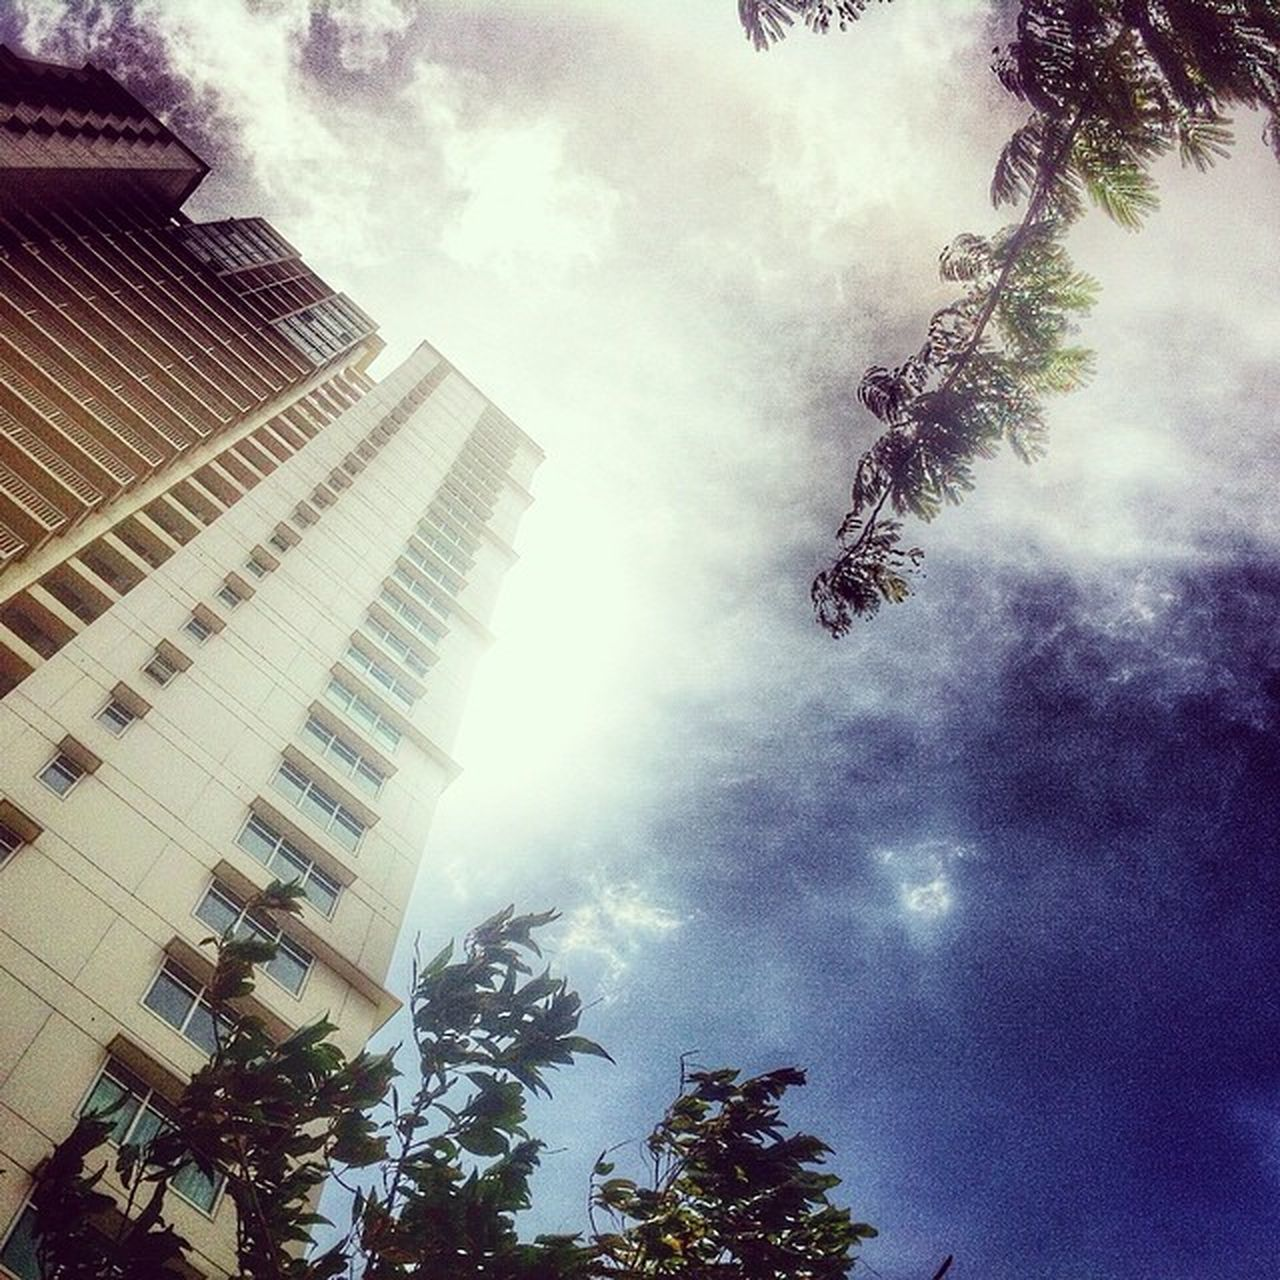 architecture, tree, growth, low angle view, building exterior, sky, built structure, no people, outdoors, city, modern, nature, day